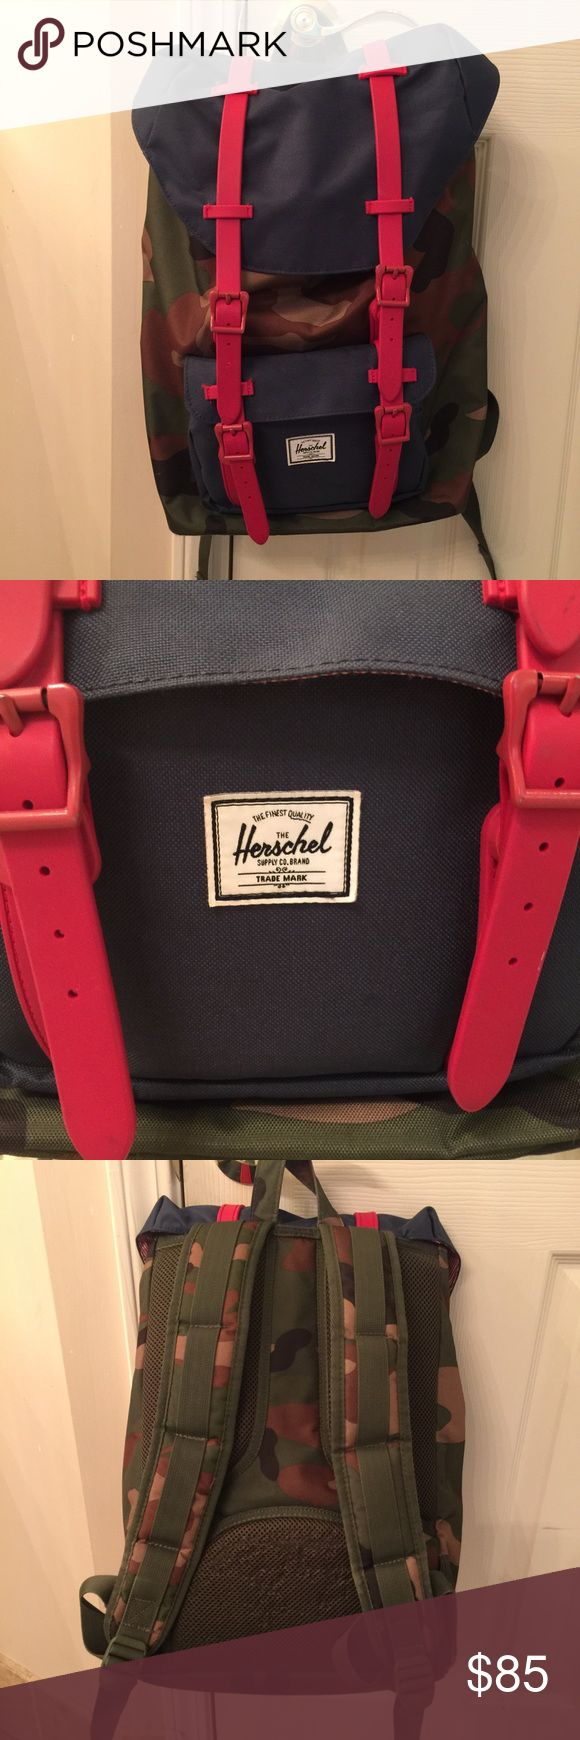 Herschel Camo Backpack Gently used. Price is firm. Please refer to third picture of the back where there is a little bit of wear but won't be seen when you wear it. Clean on the inside. No marks or stains Herschel Supply Company Bags Backpacks